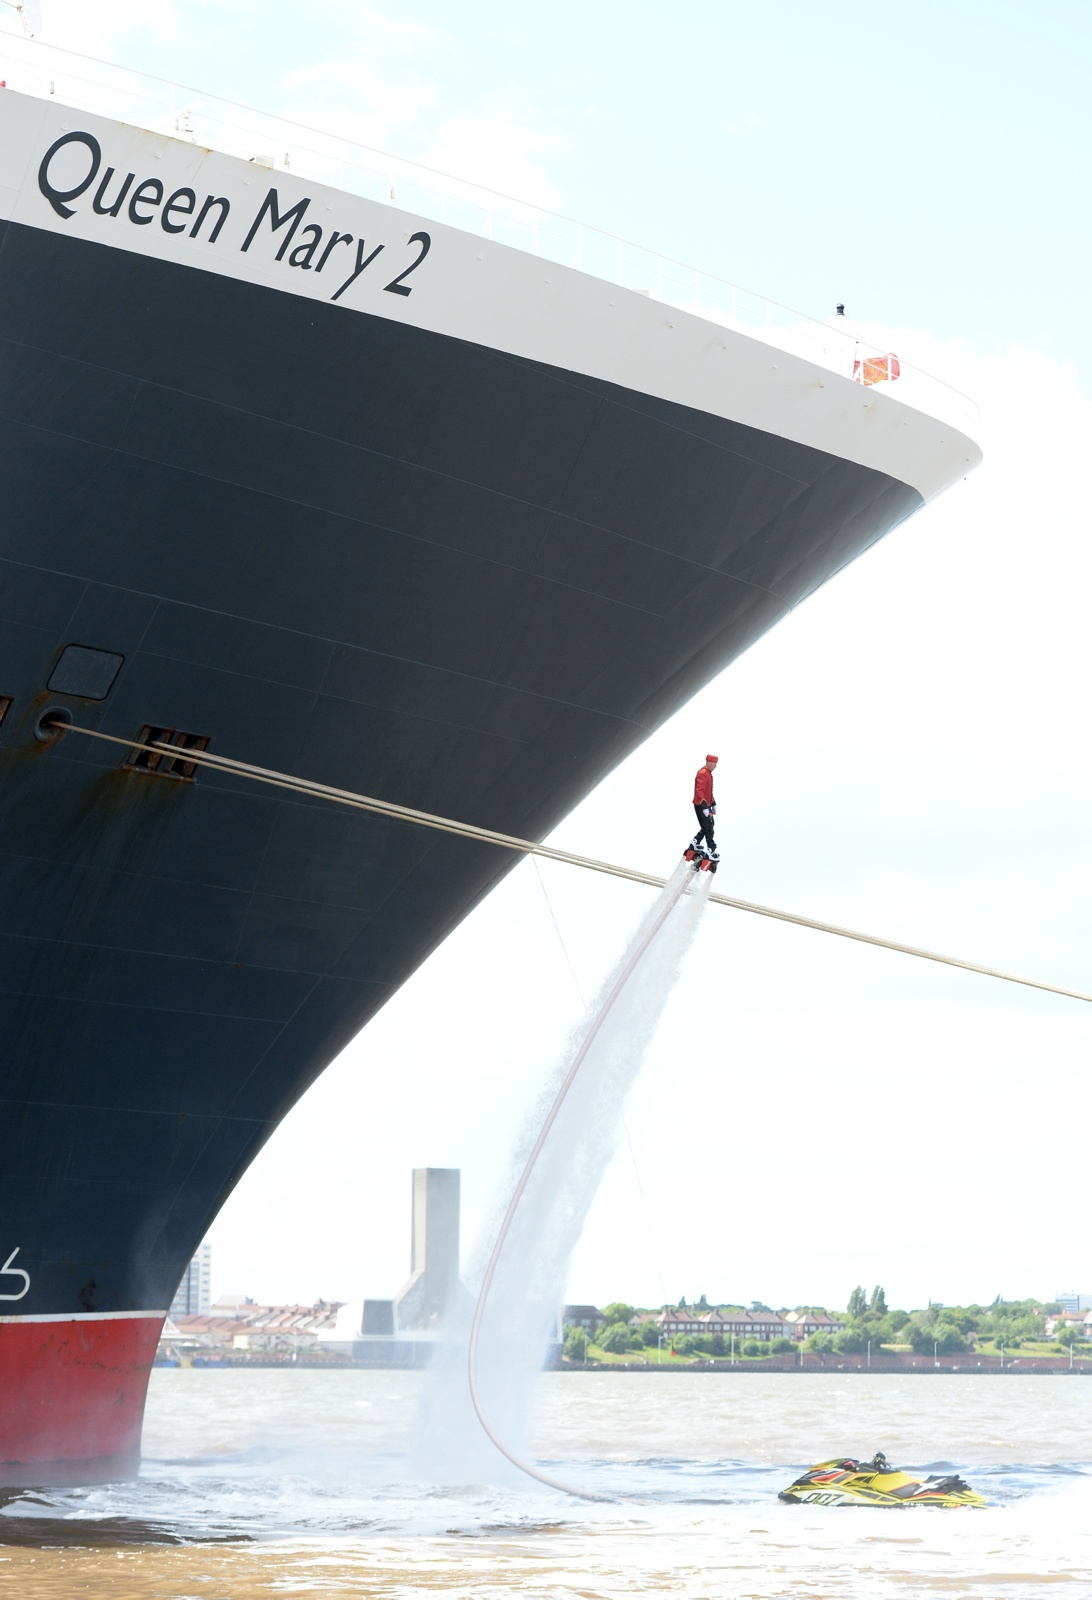 Flyboarder rises high next to Queen Mary 2